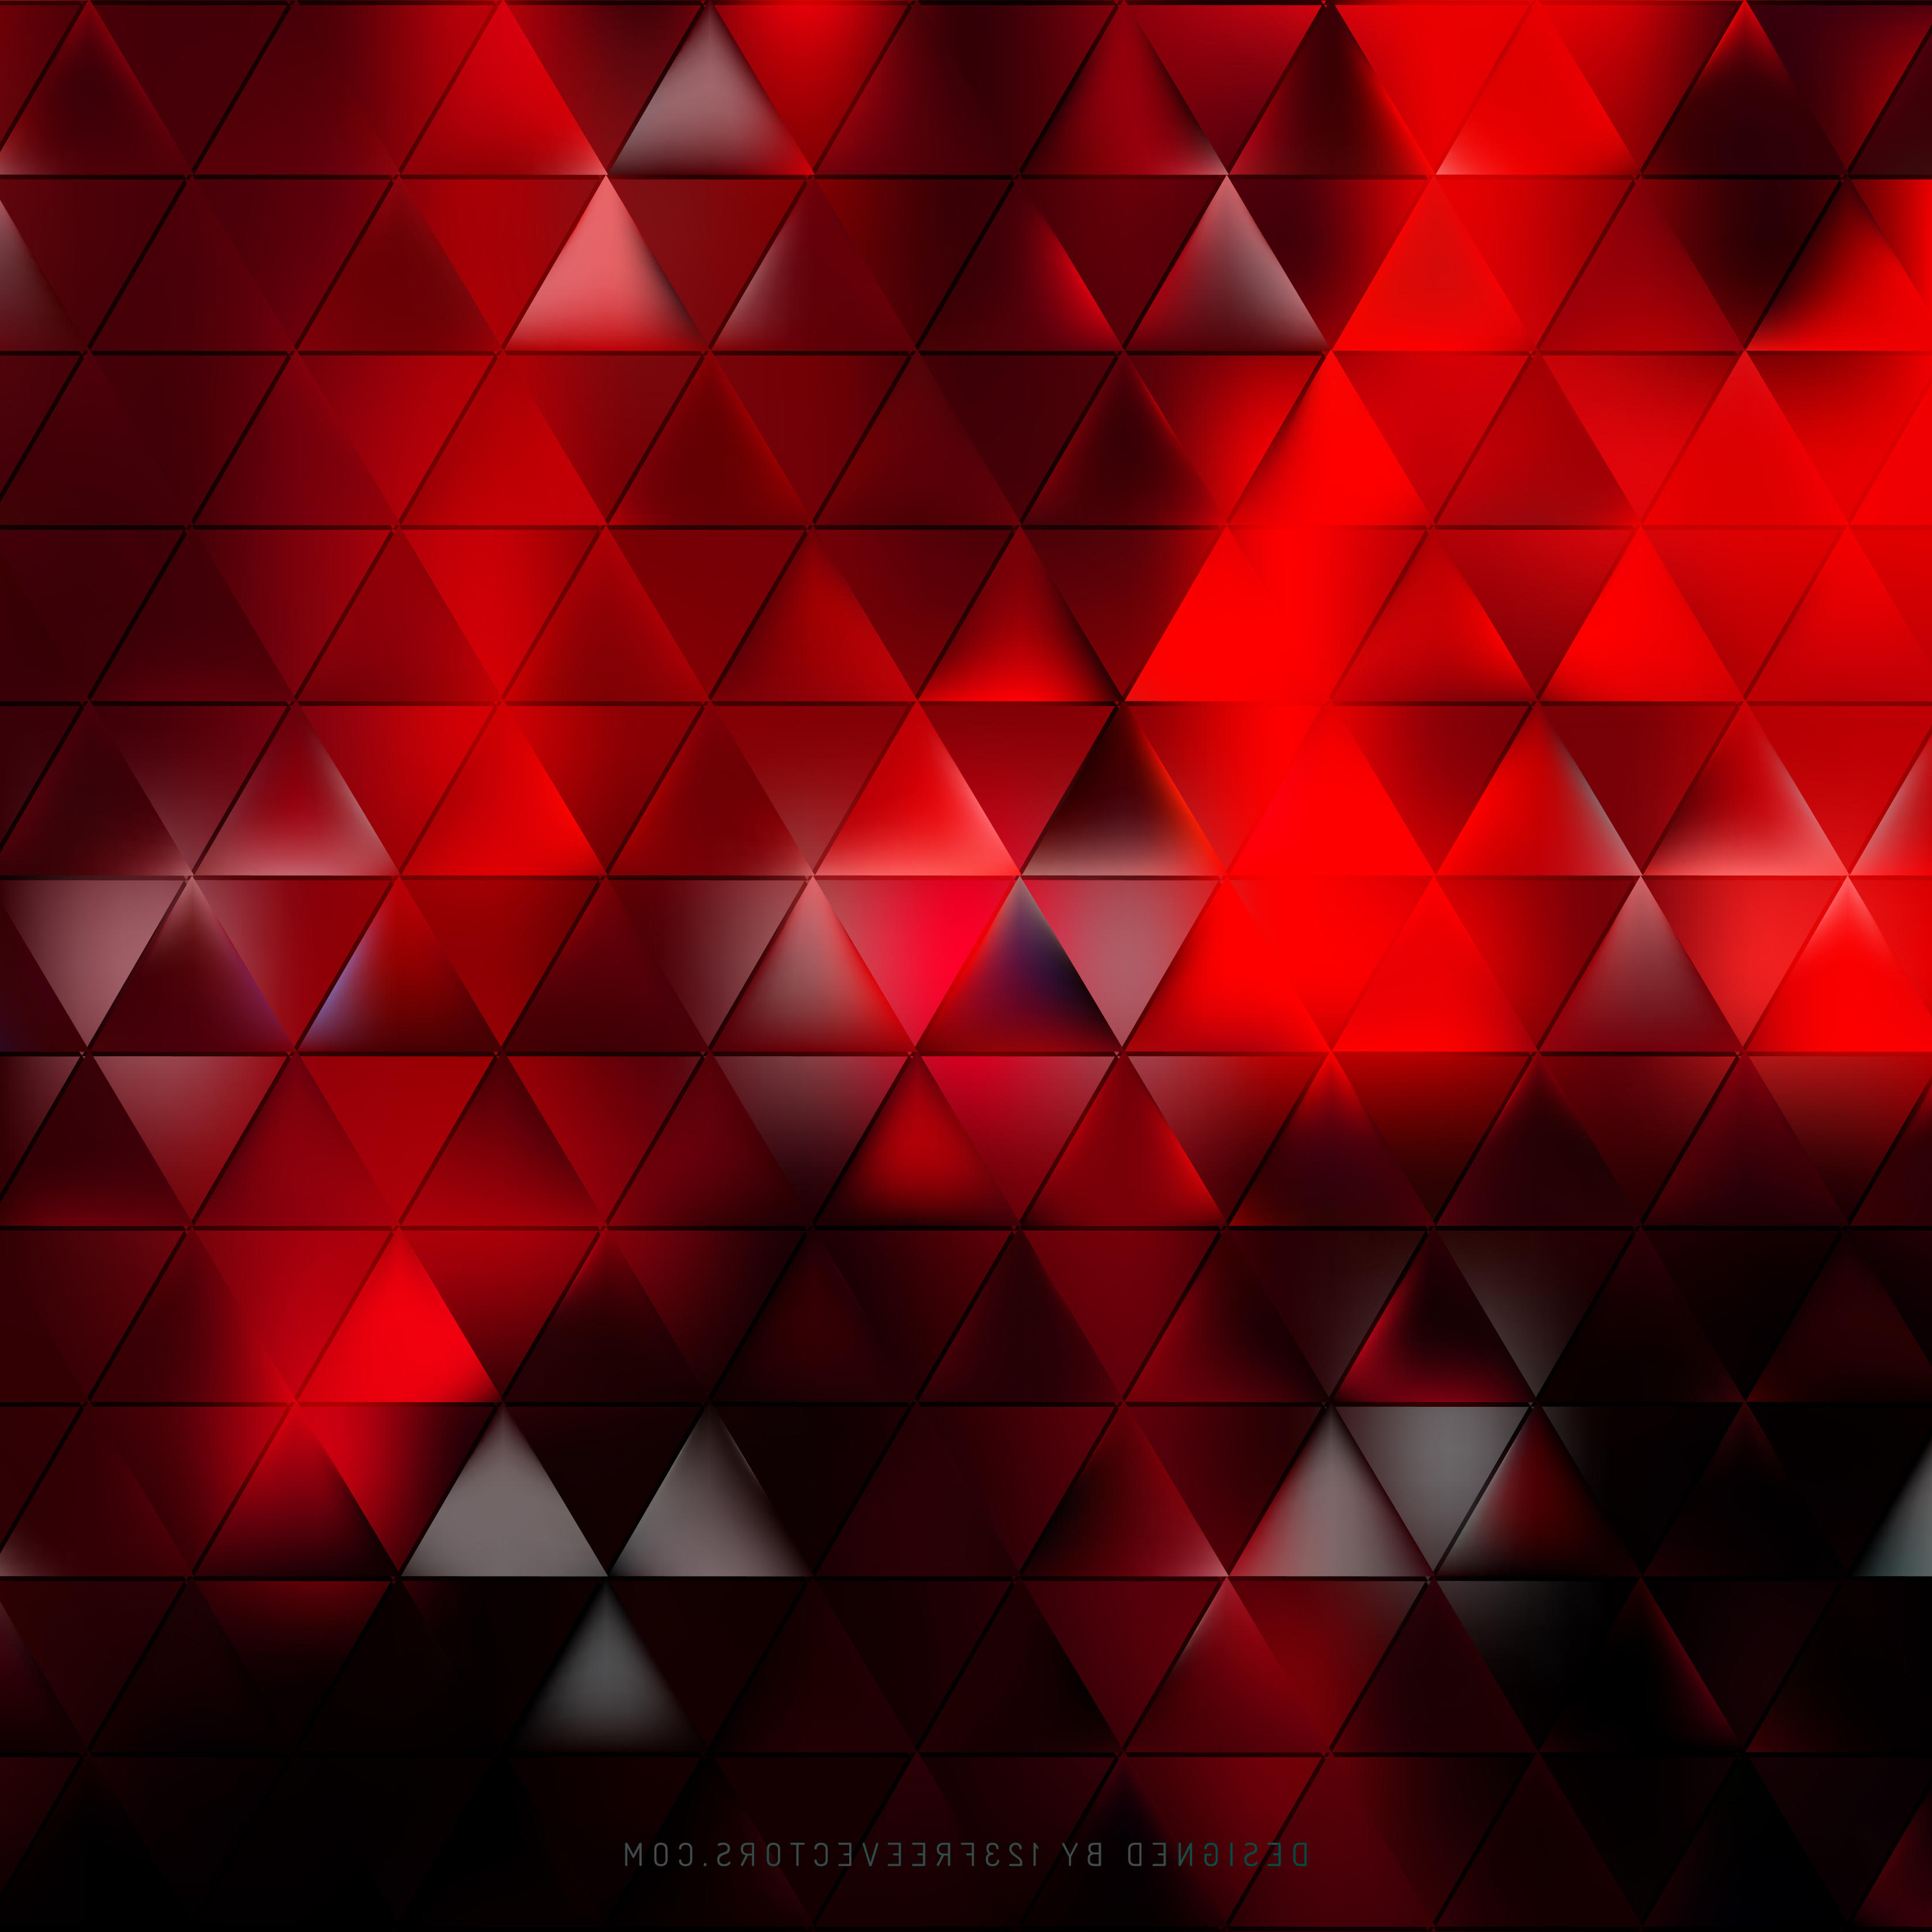 3333x3333 Red And Black Abstract Abstract Red Black Triangle Background